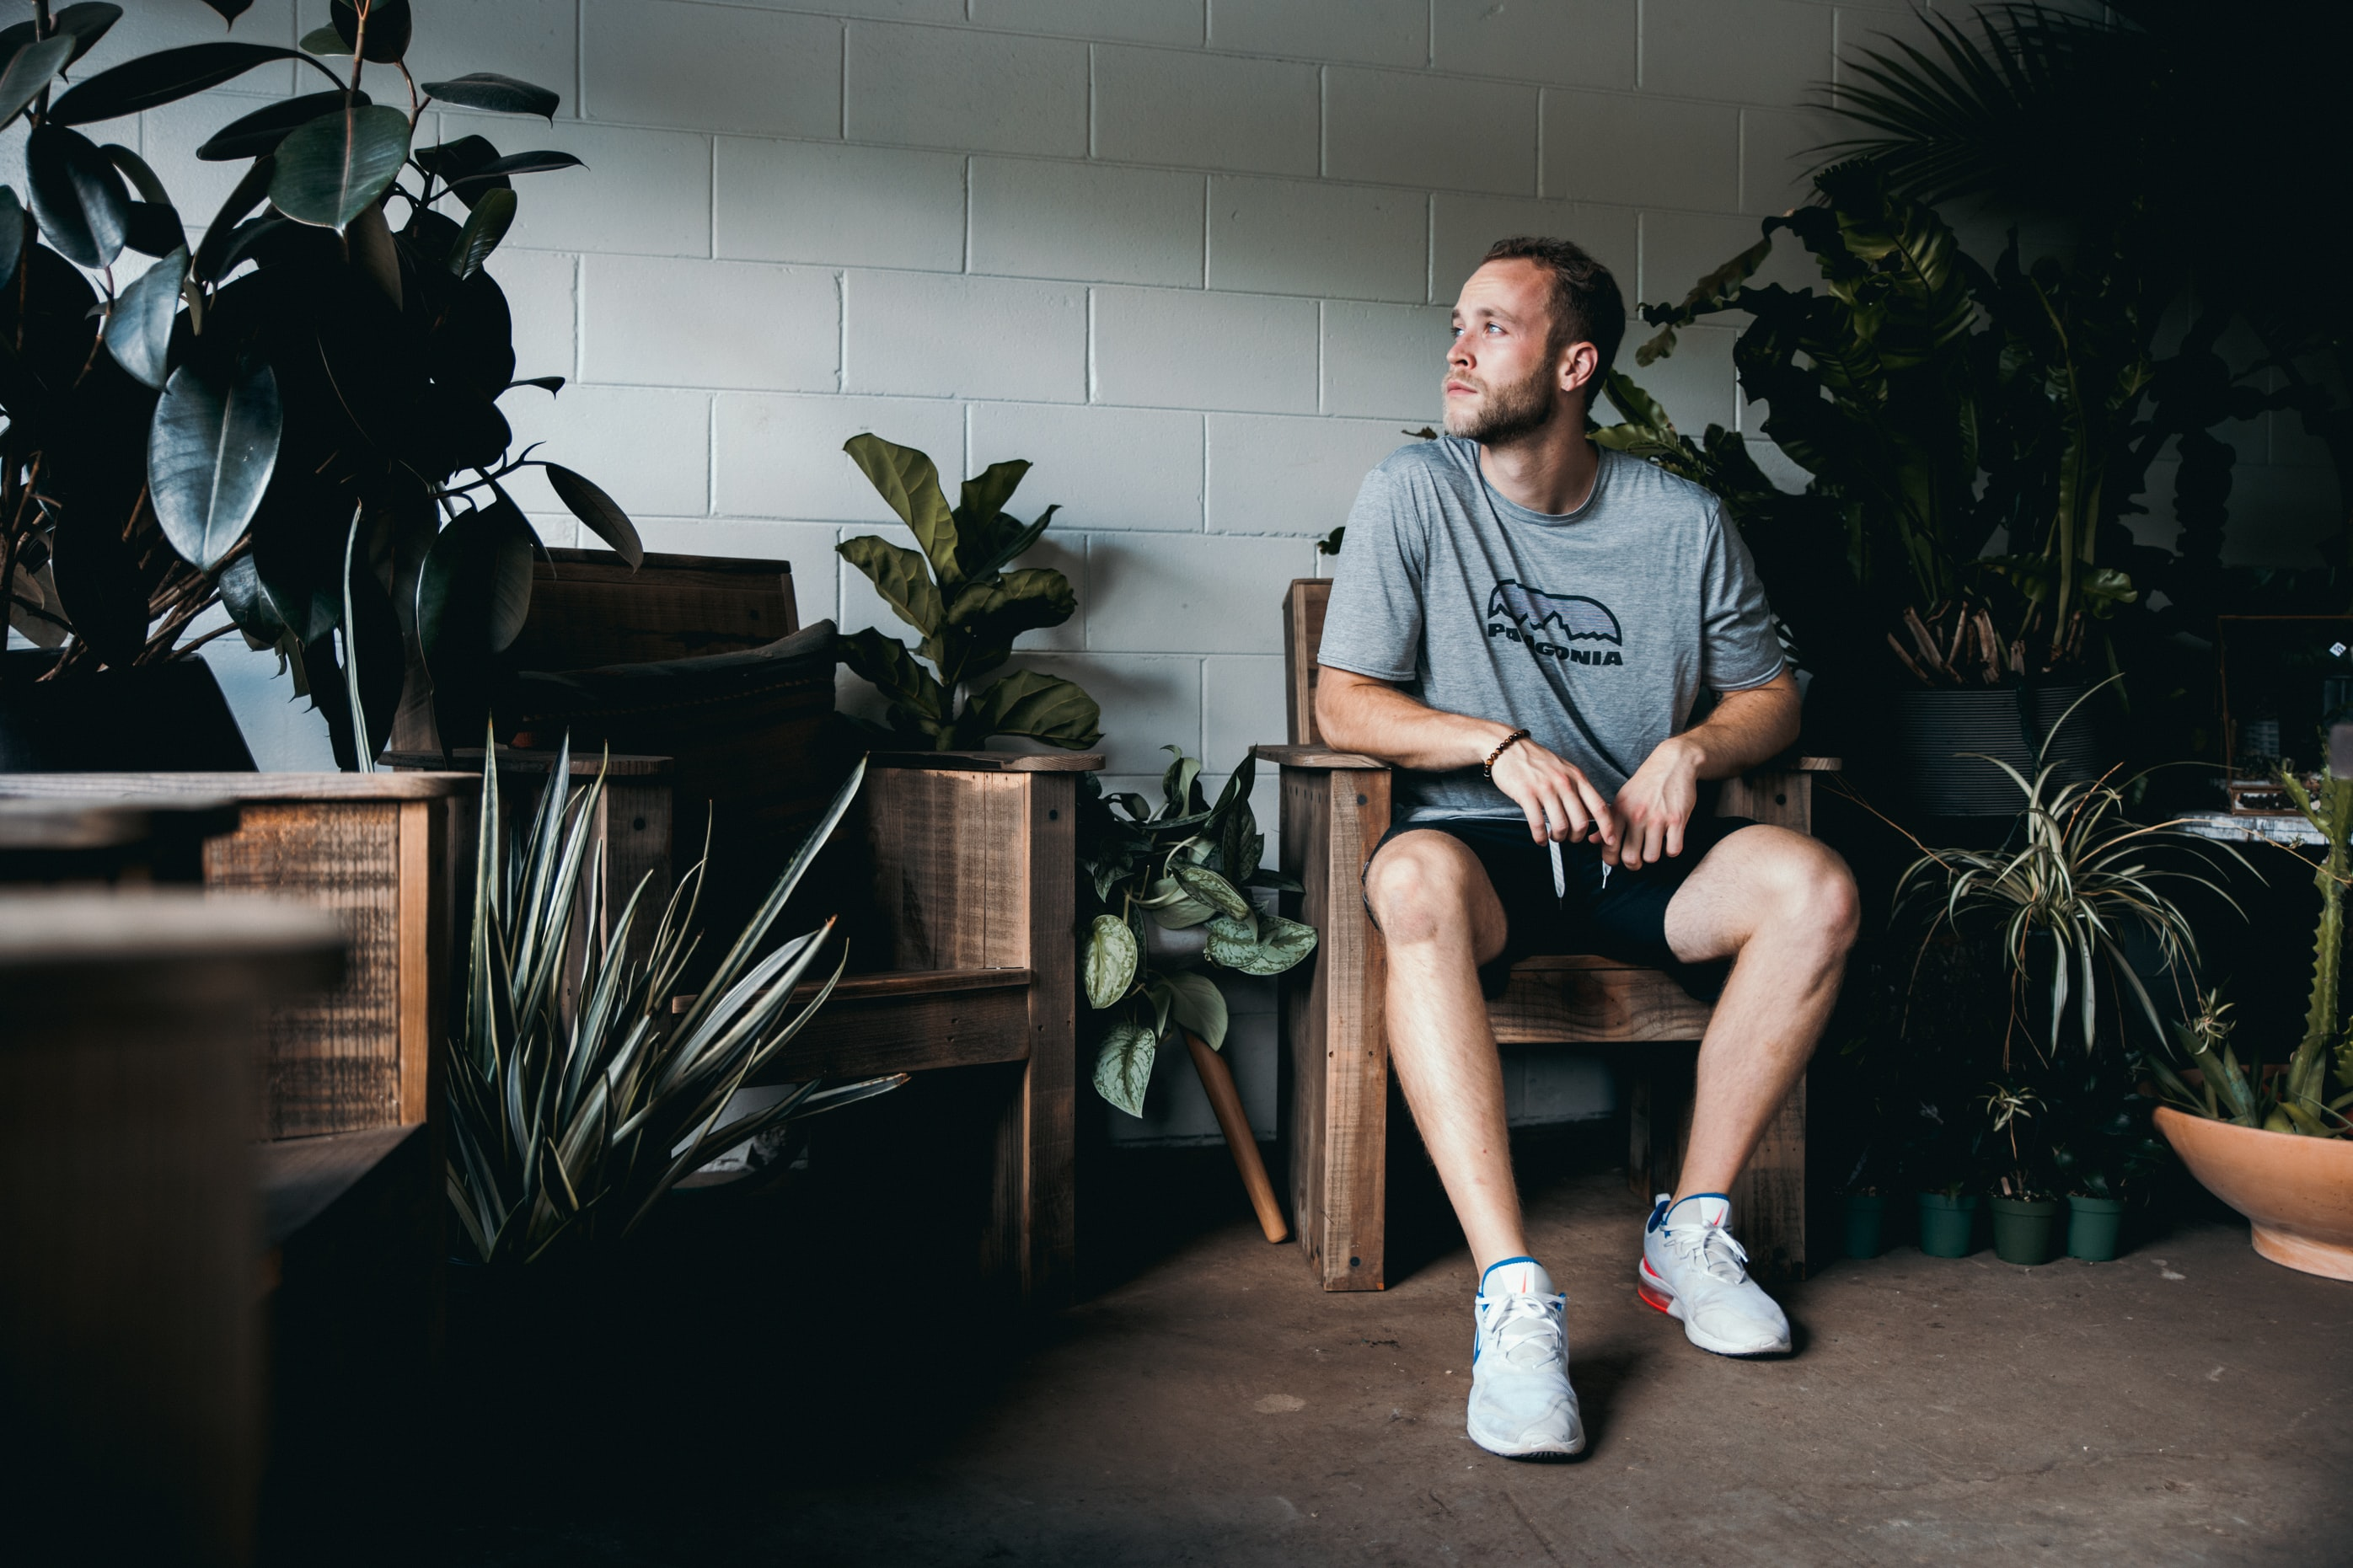 seated man between potted plants in front of while wall